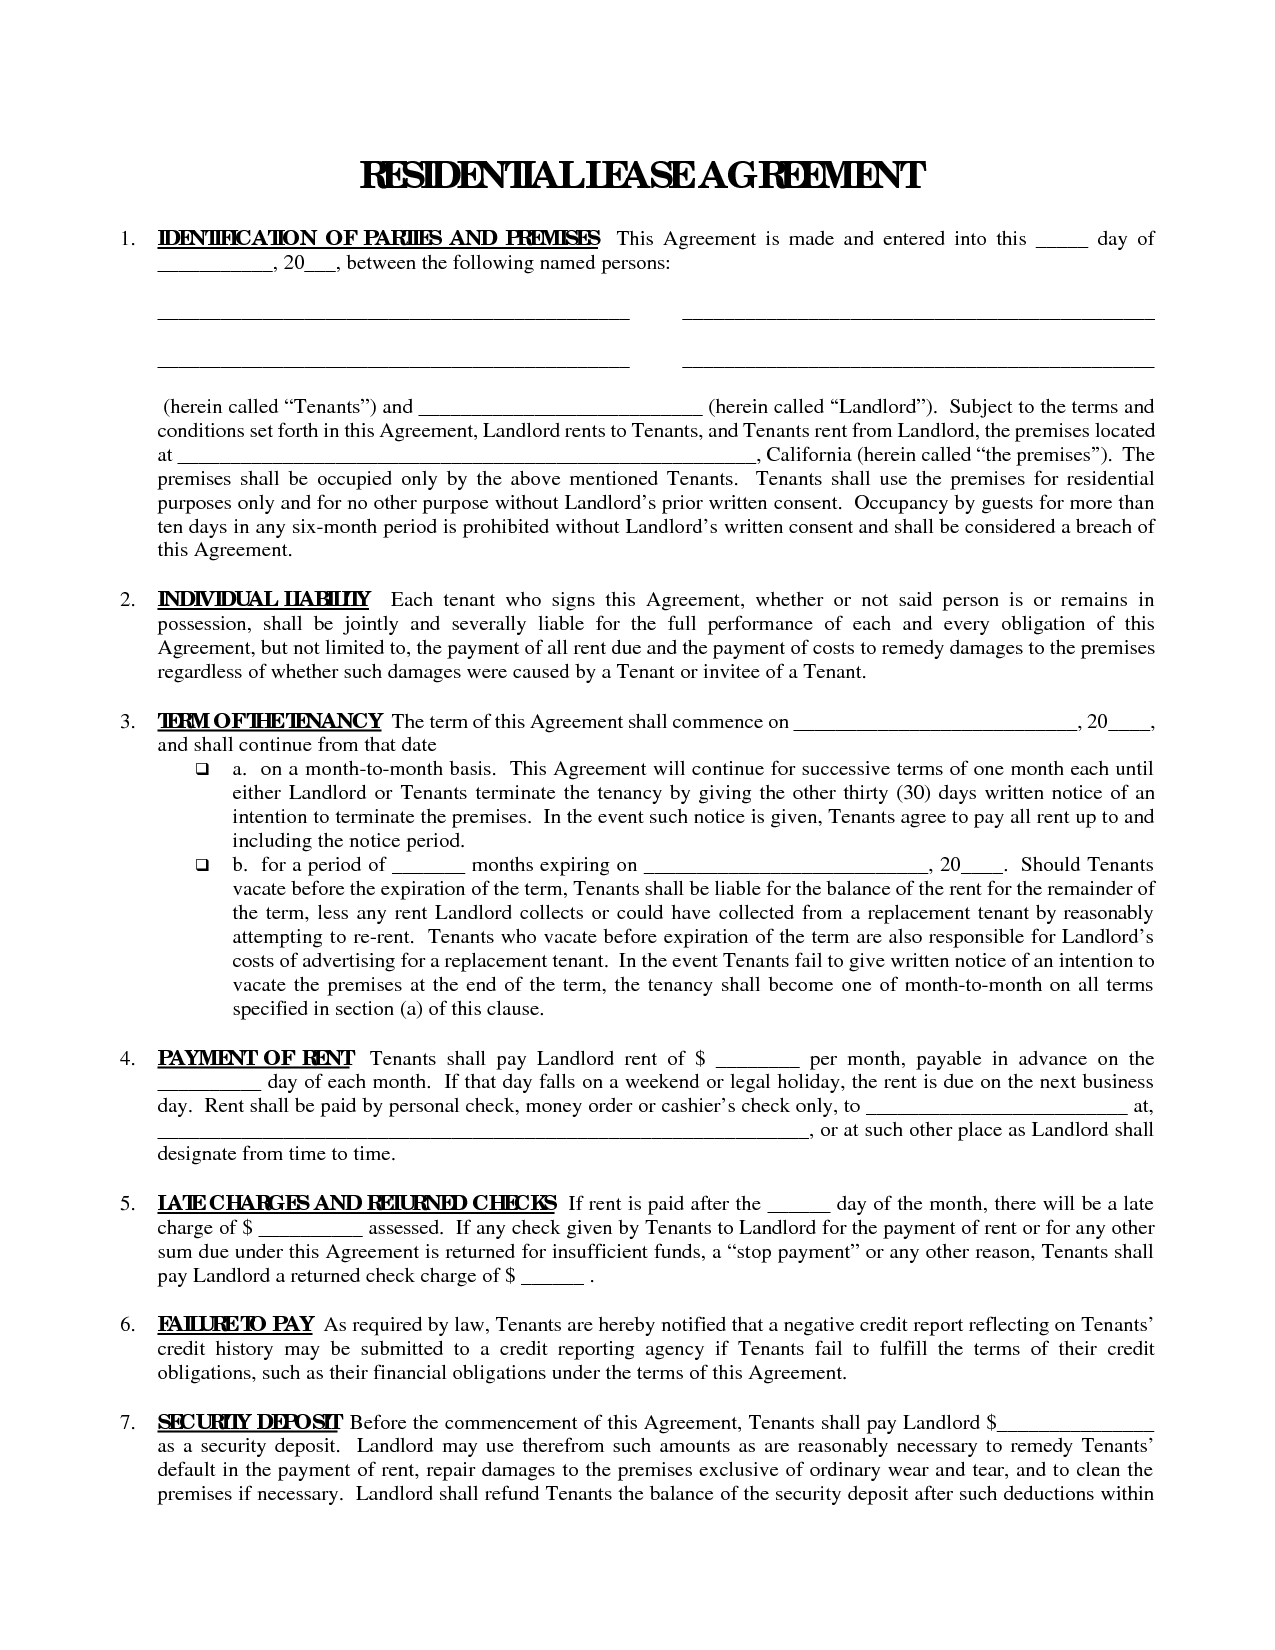 Printable Residential Free House Lease Agreement | Residential Lease ...